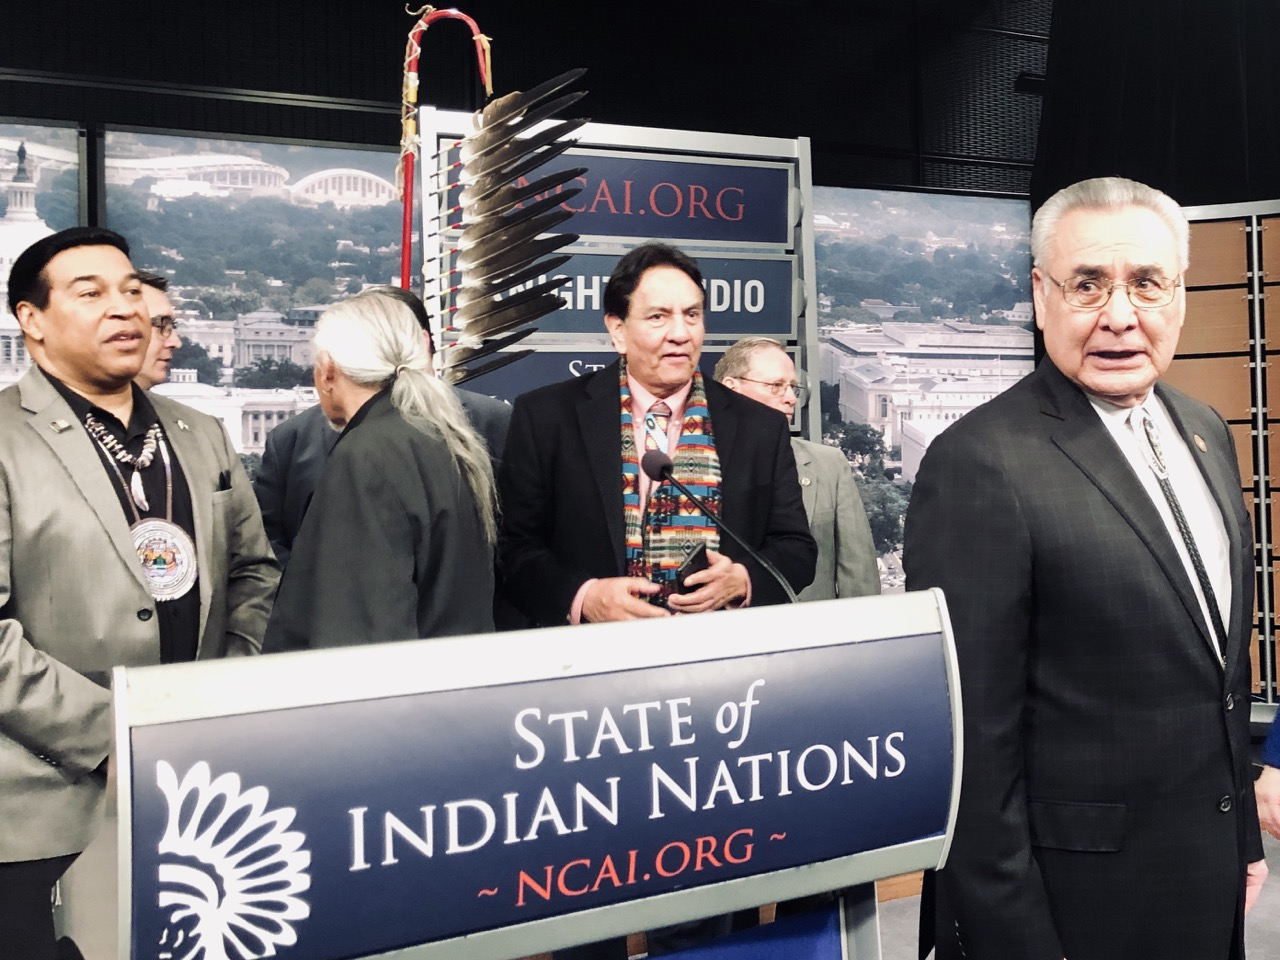 Native leaders deliver rebuke of Trump administration at State of Indian Nations